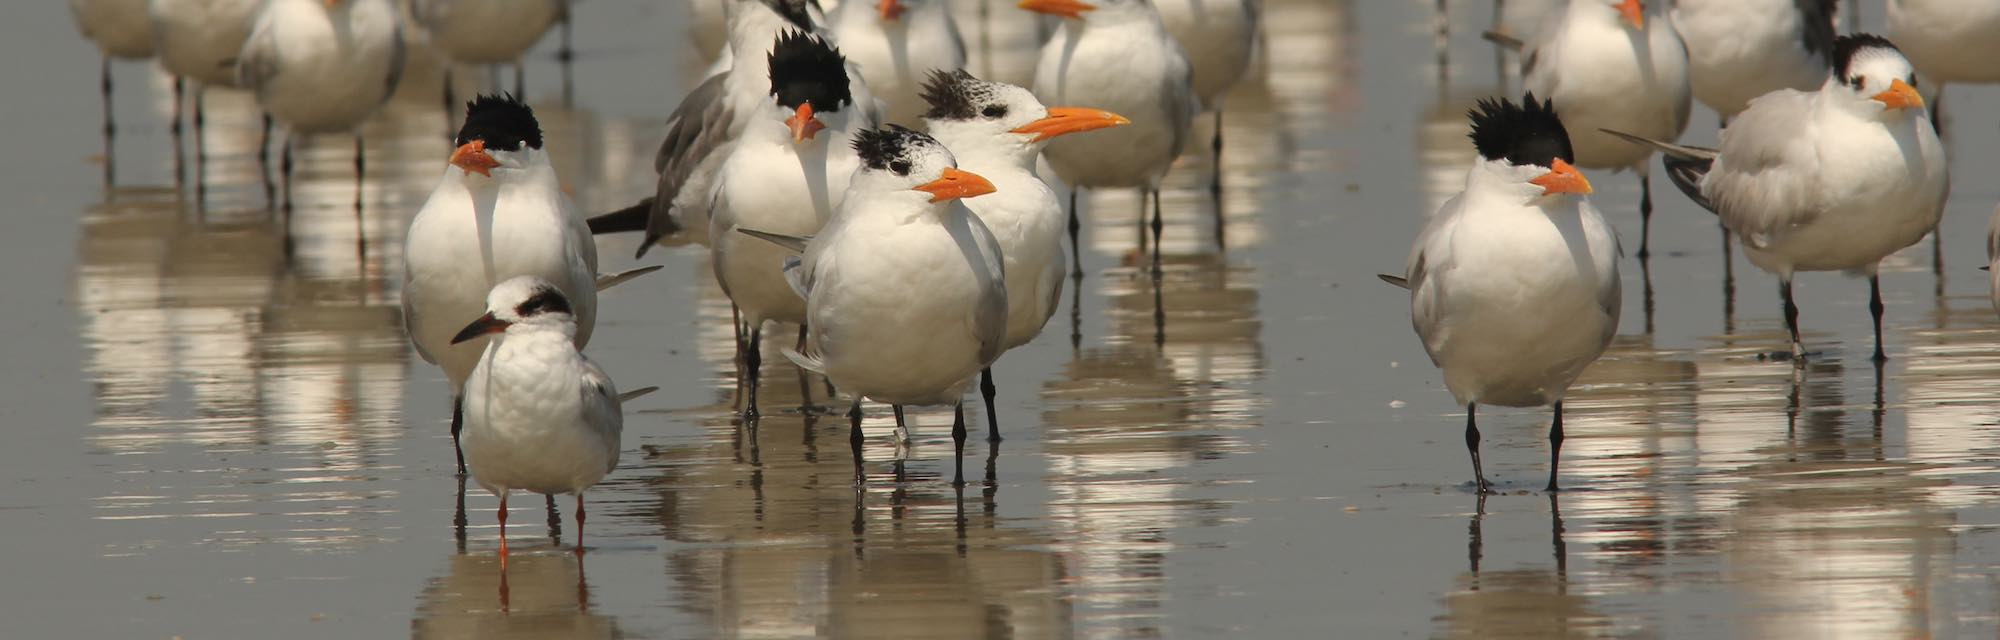 Terns standing in the water at the beach.